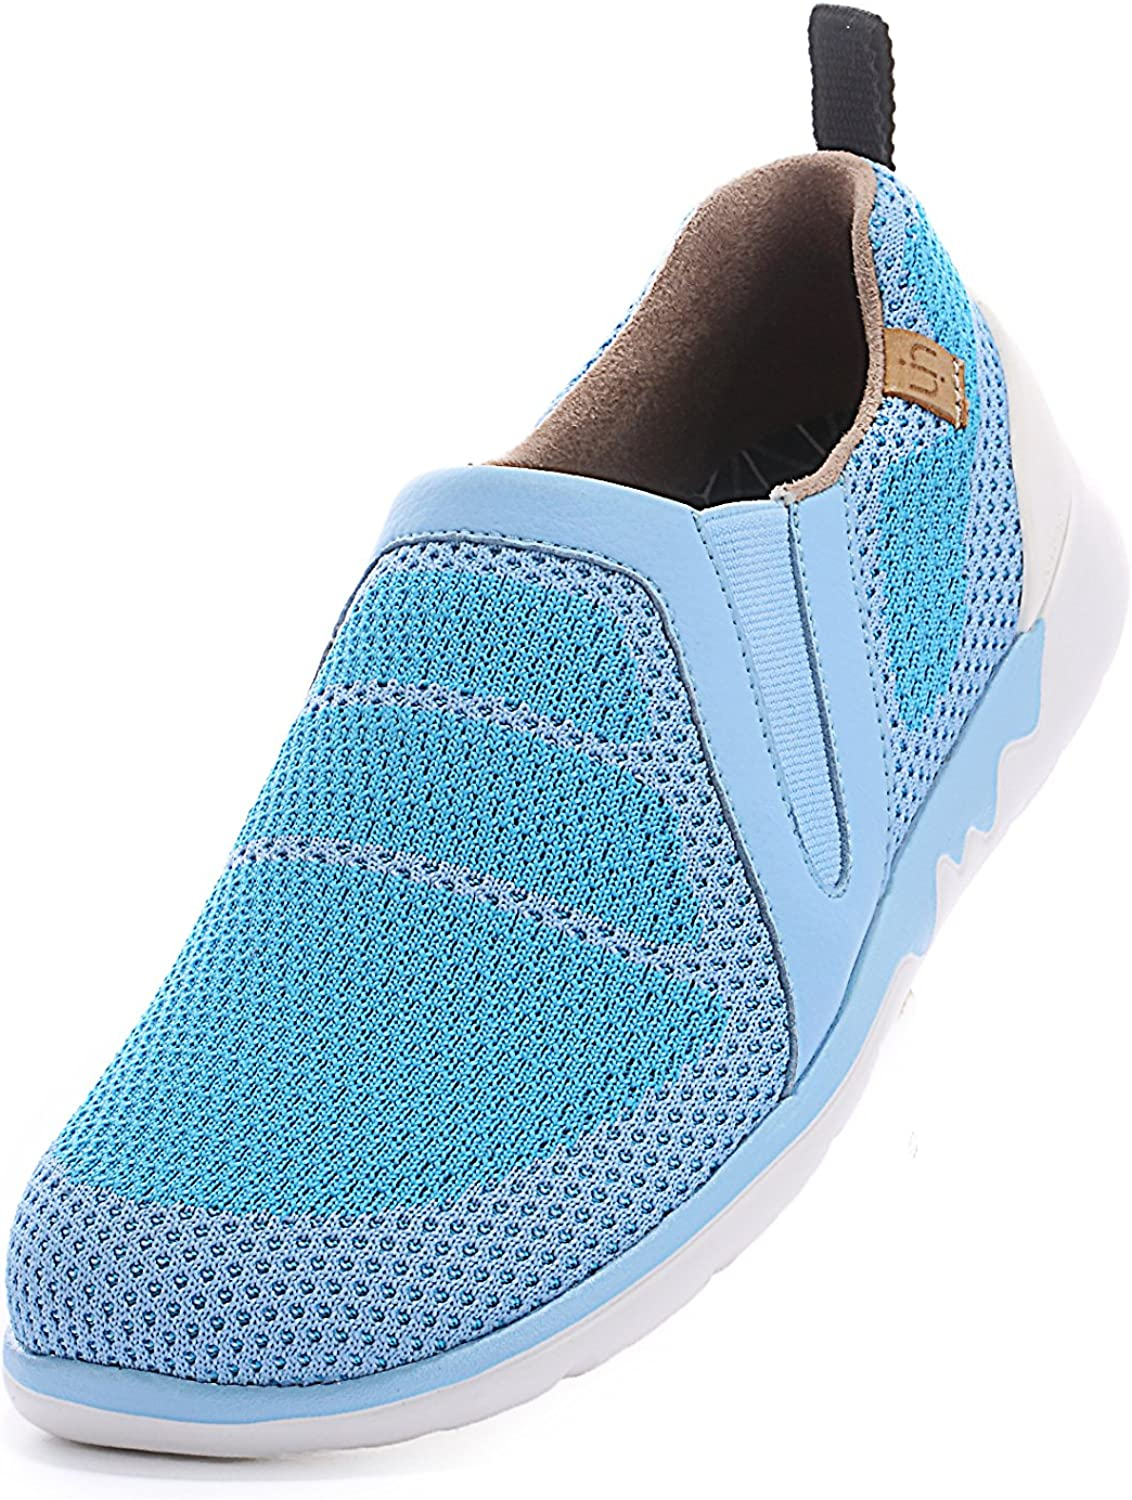 UIN Women's Victoria colorful Knit Travel shoes bluee